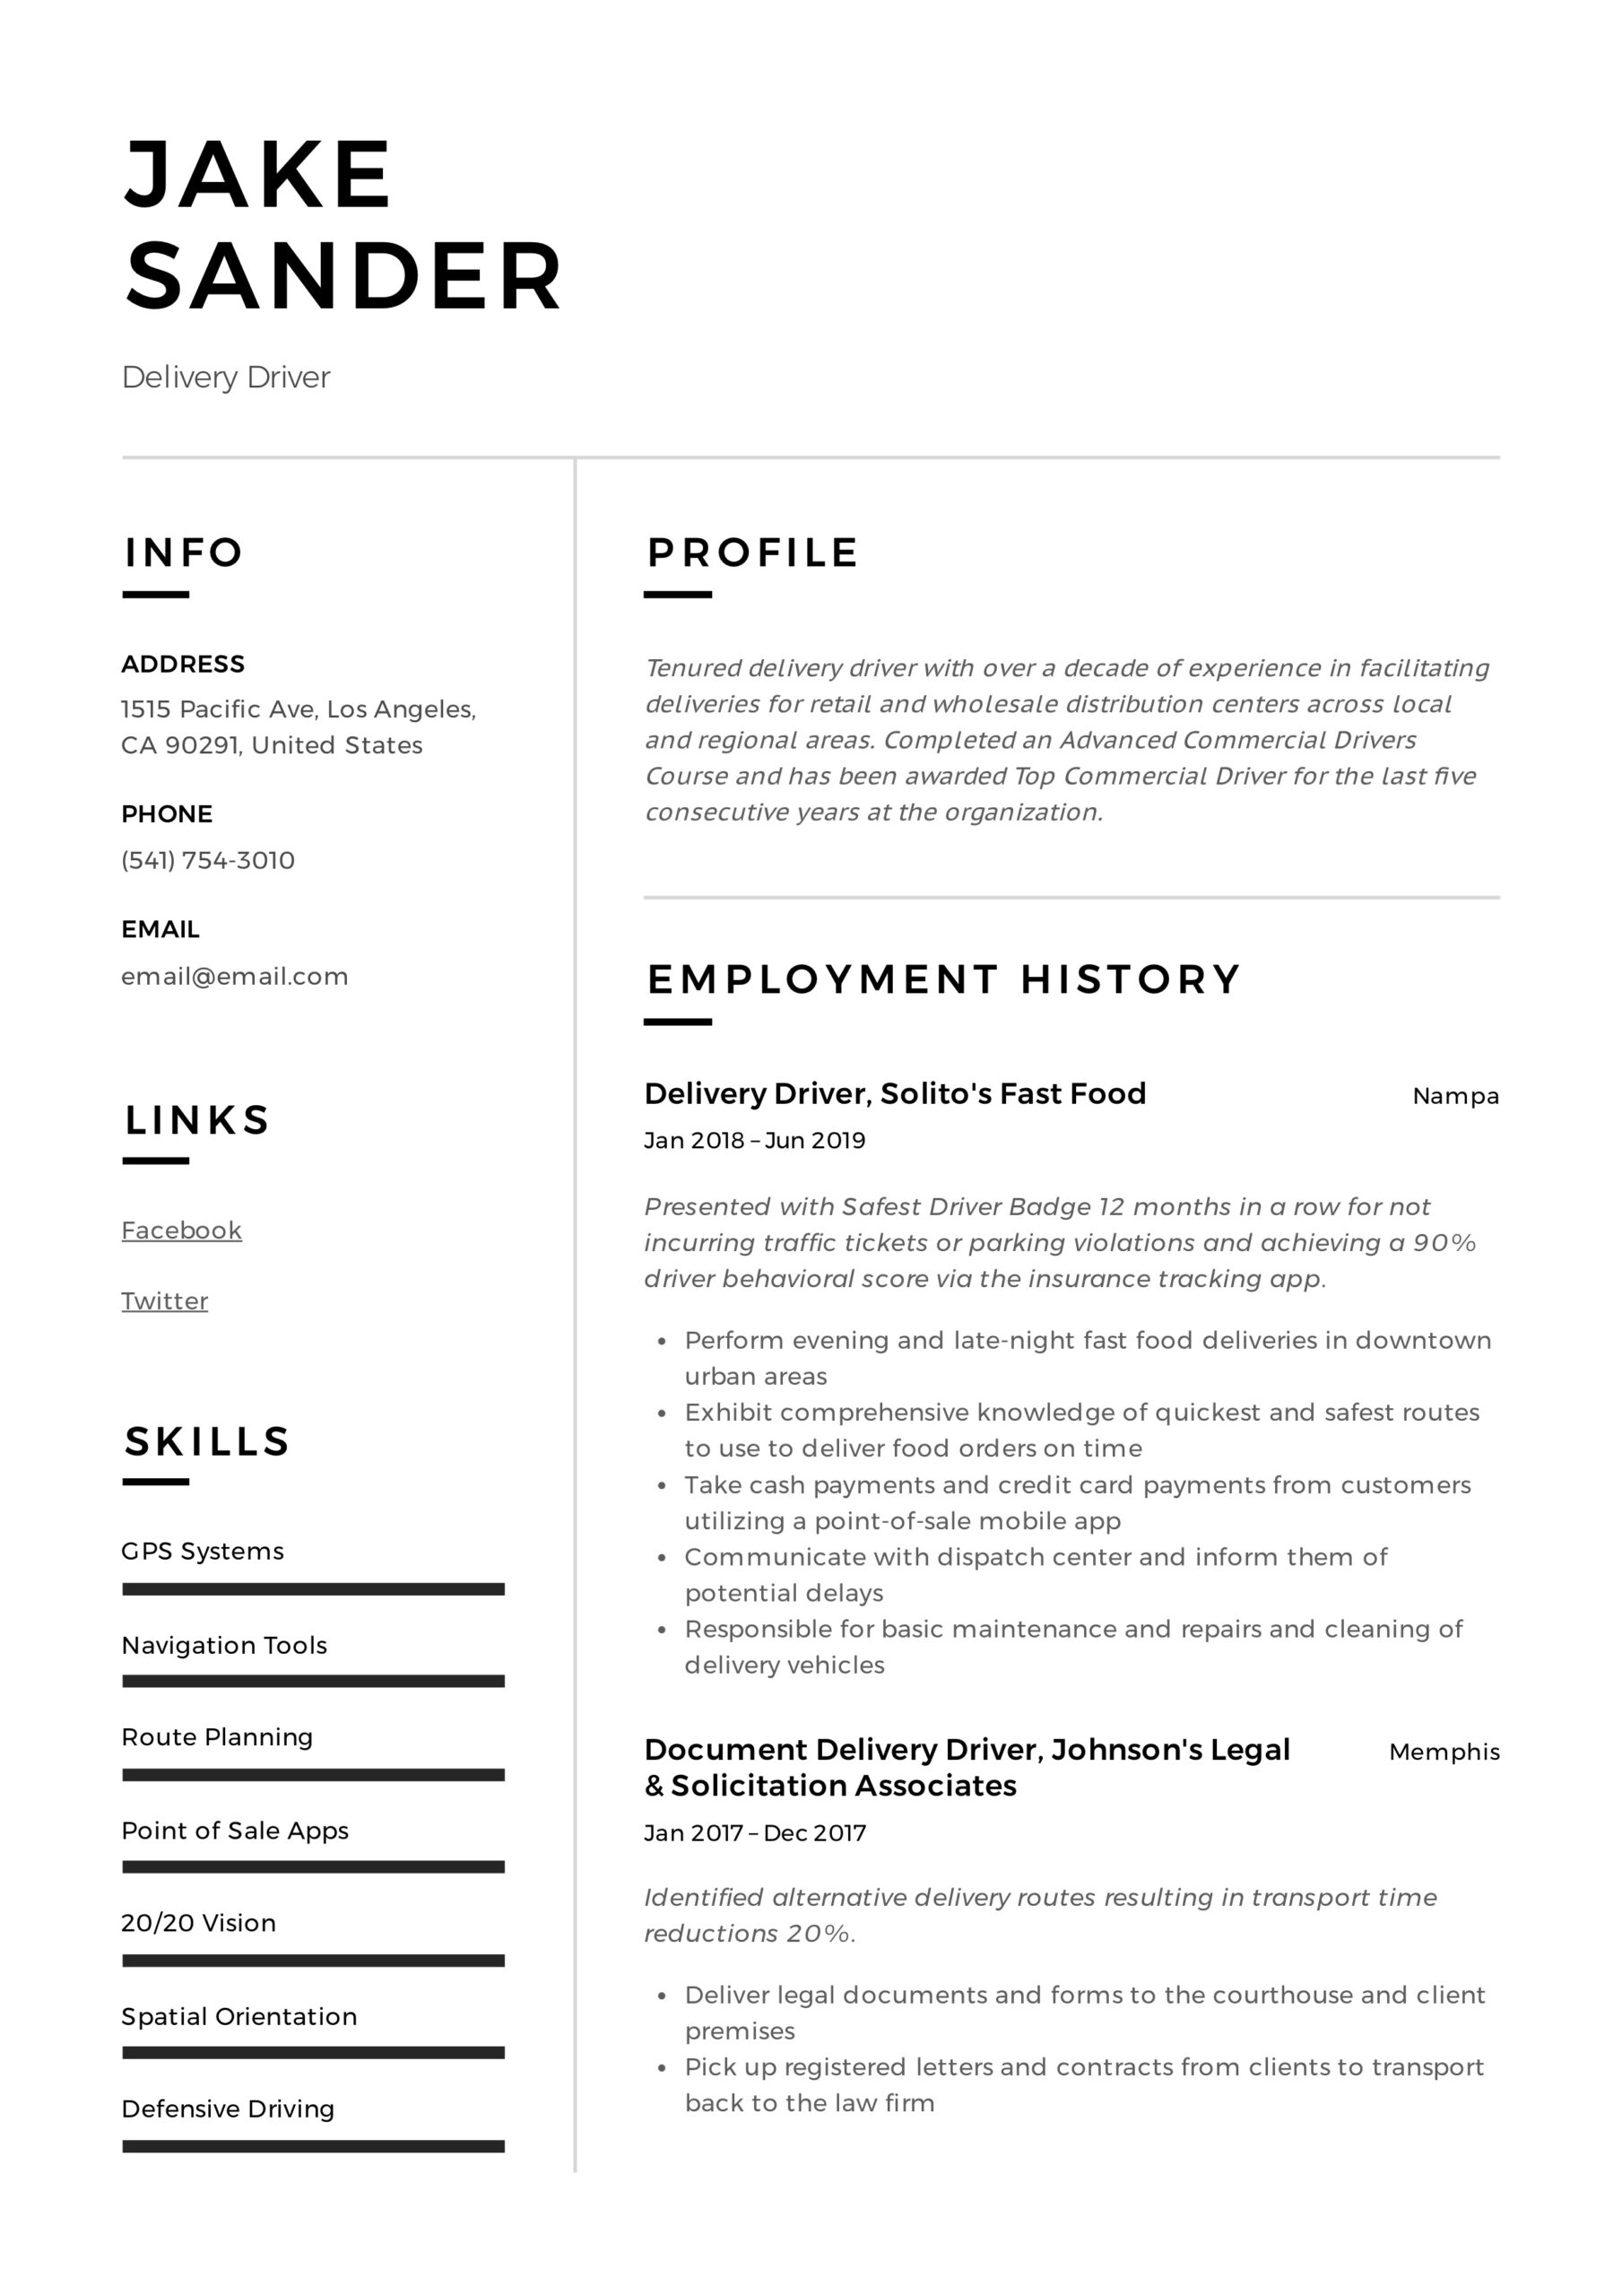 delivery driver resume writing guide examples fedex example font pairing for high school Resume Fedex Driver Resume Example